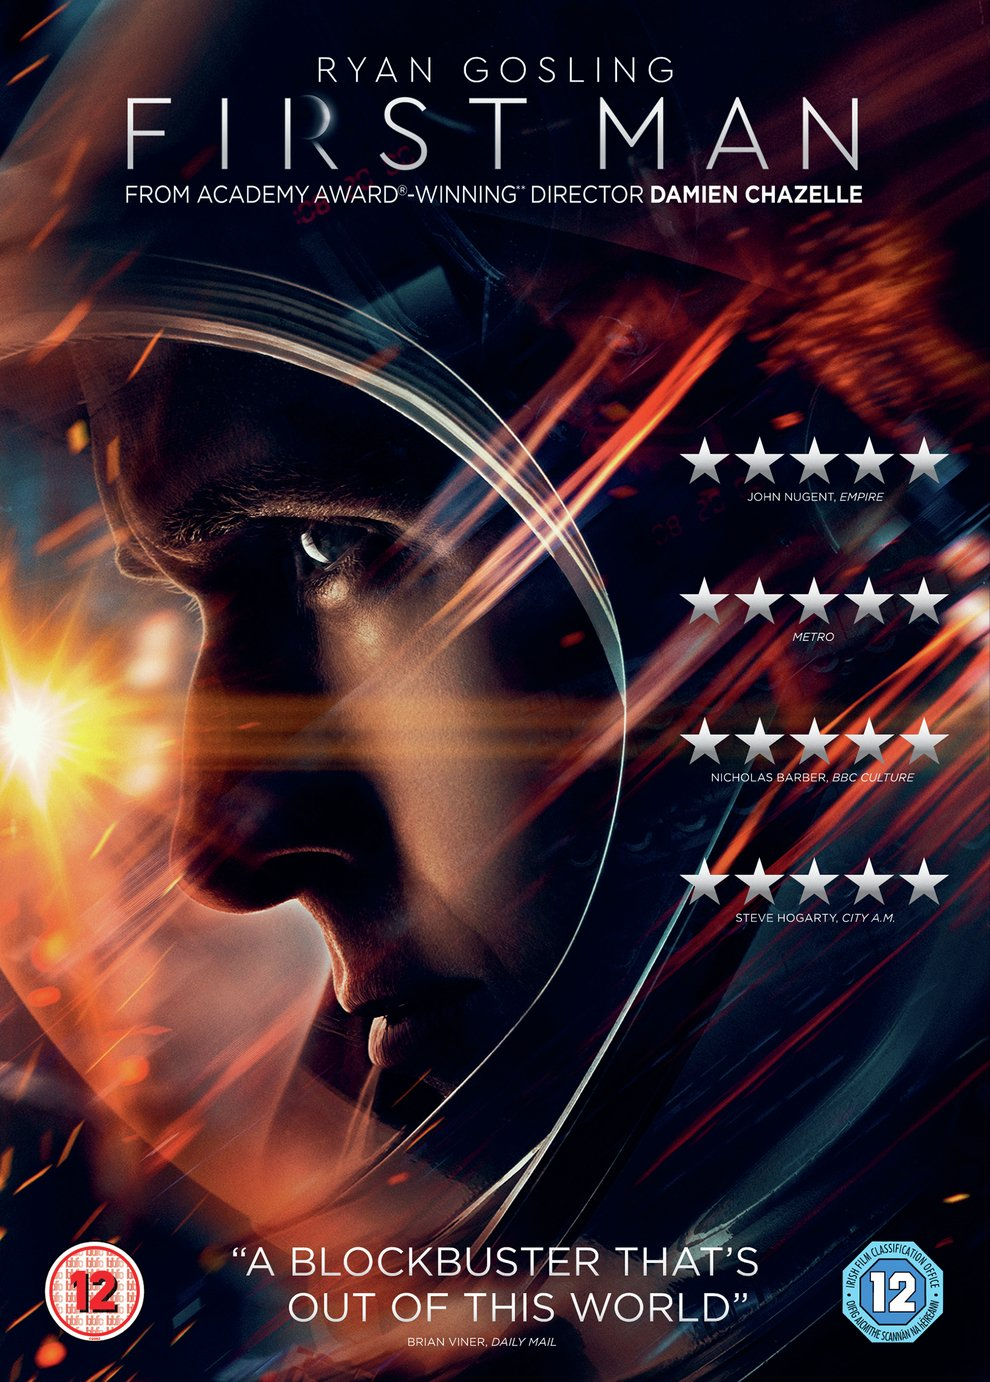 First Man DVD review